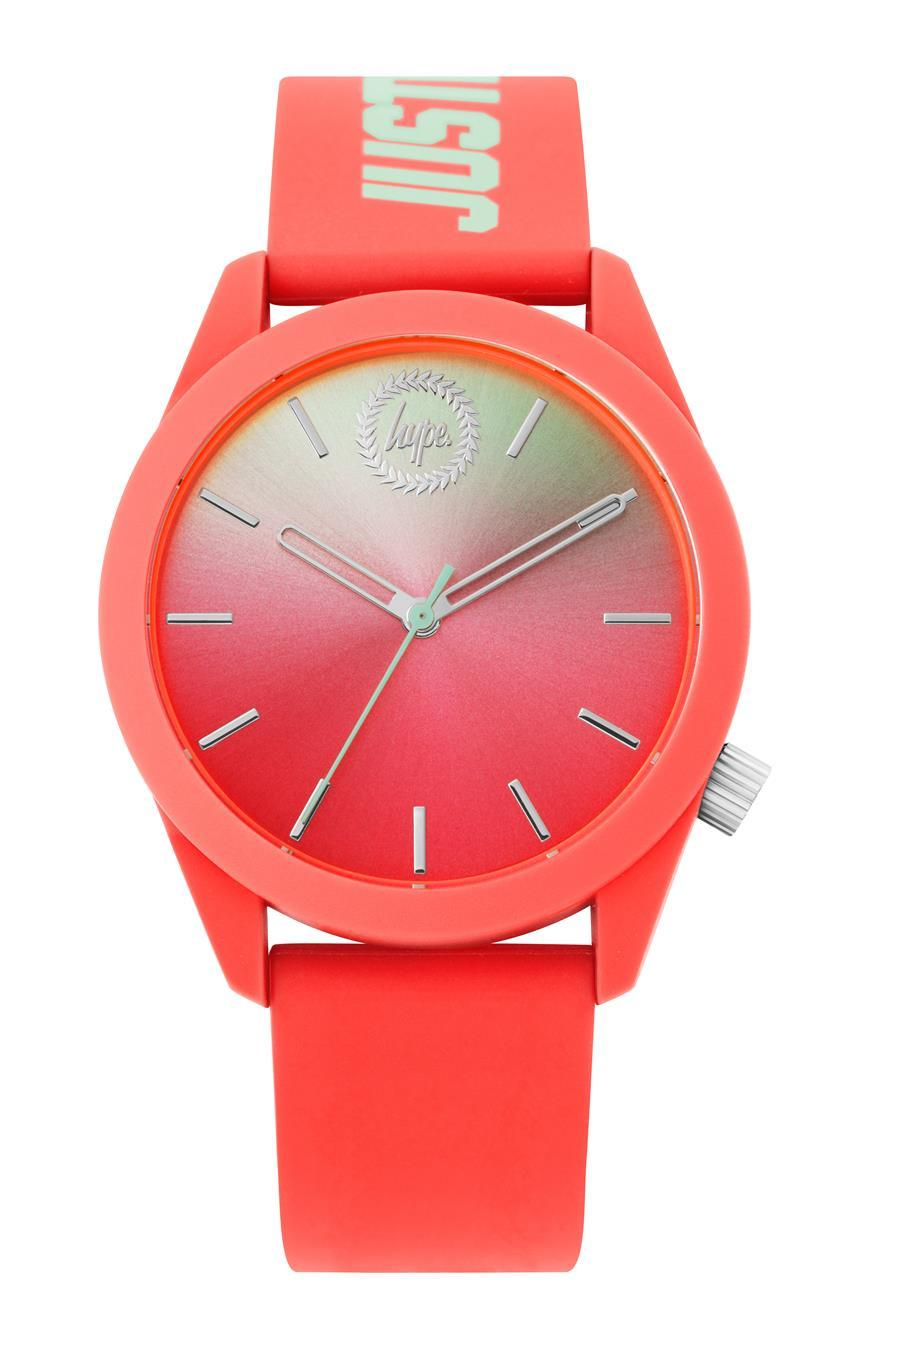 Hype Coral Gradient Kids Watch